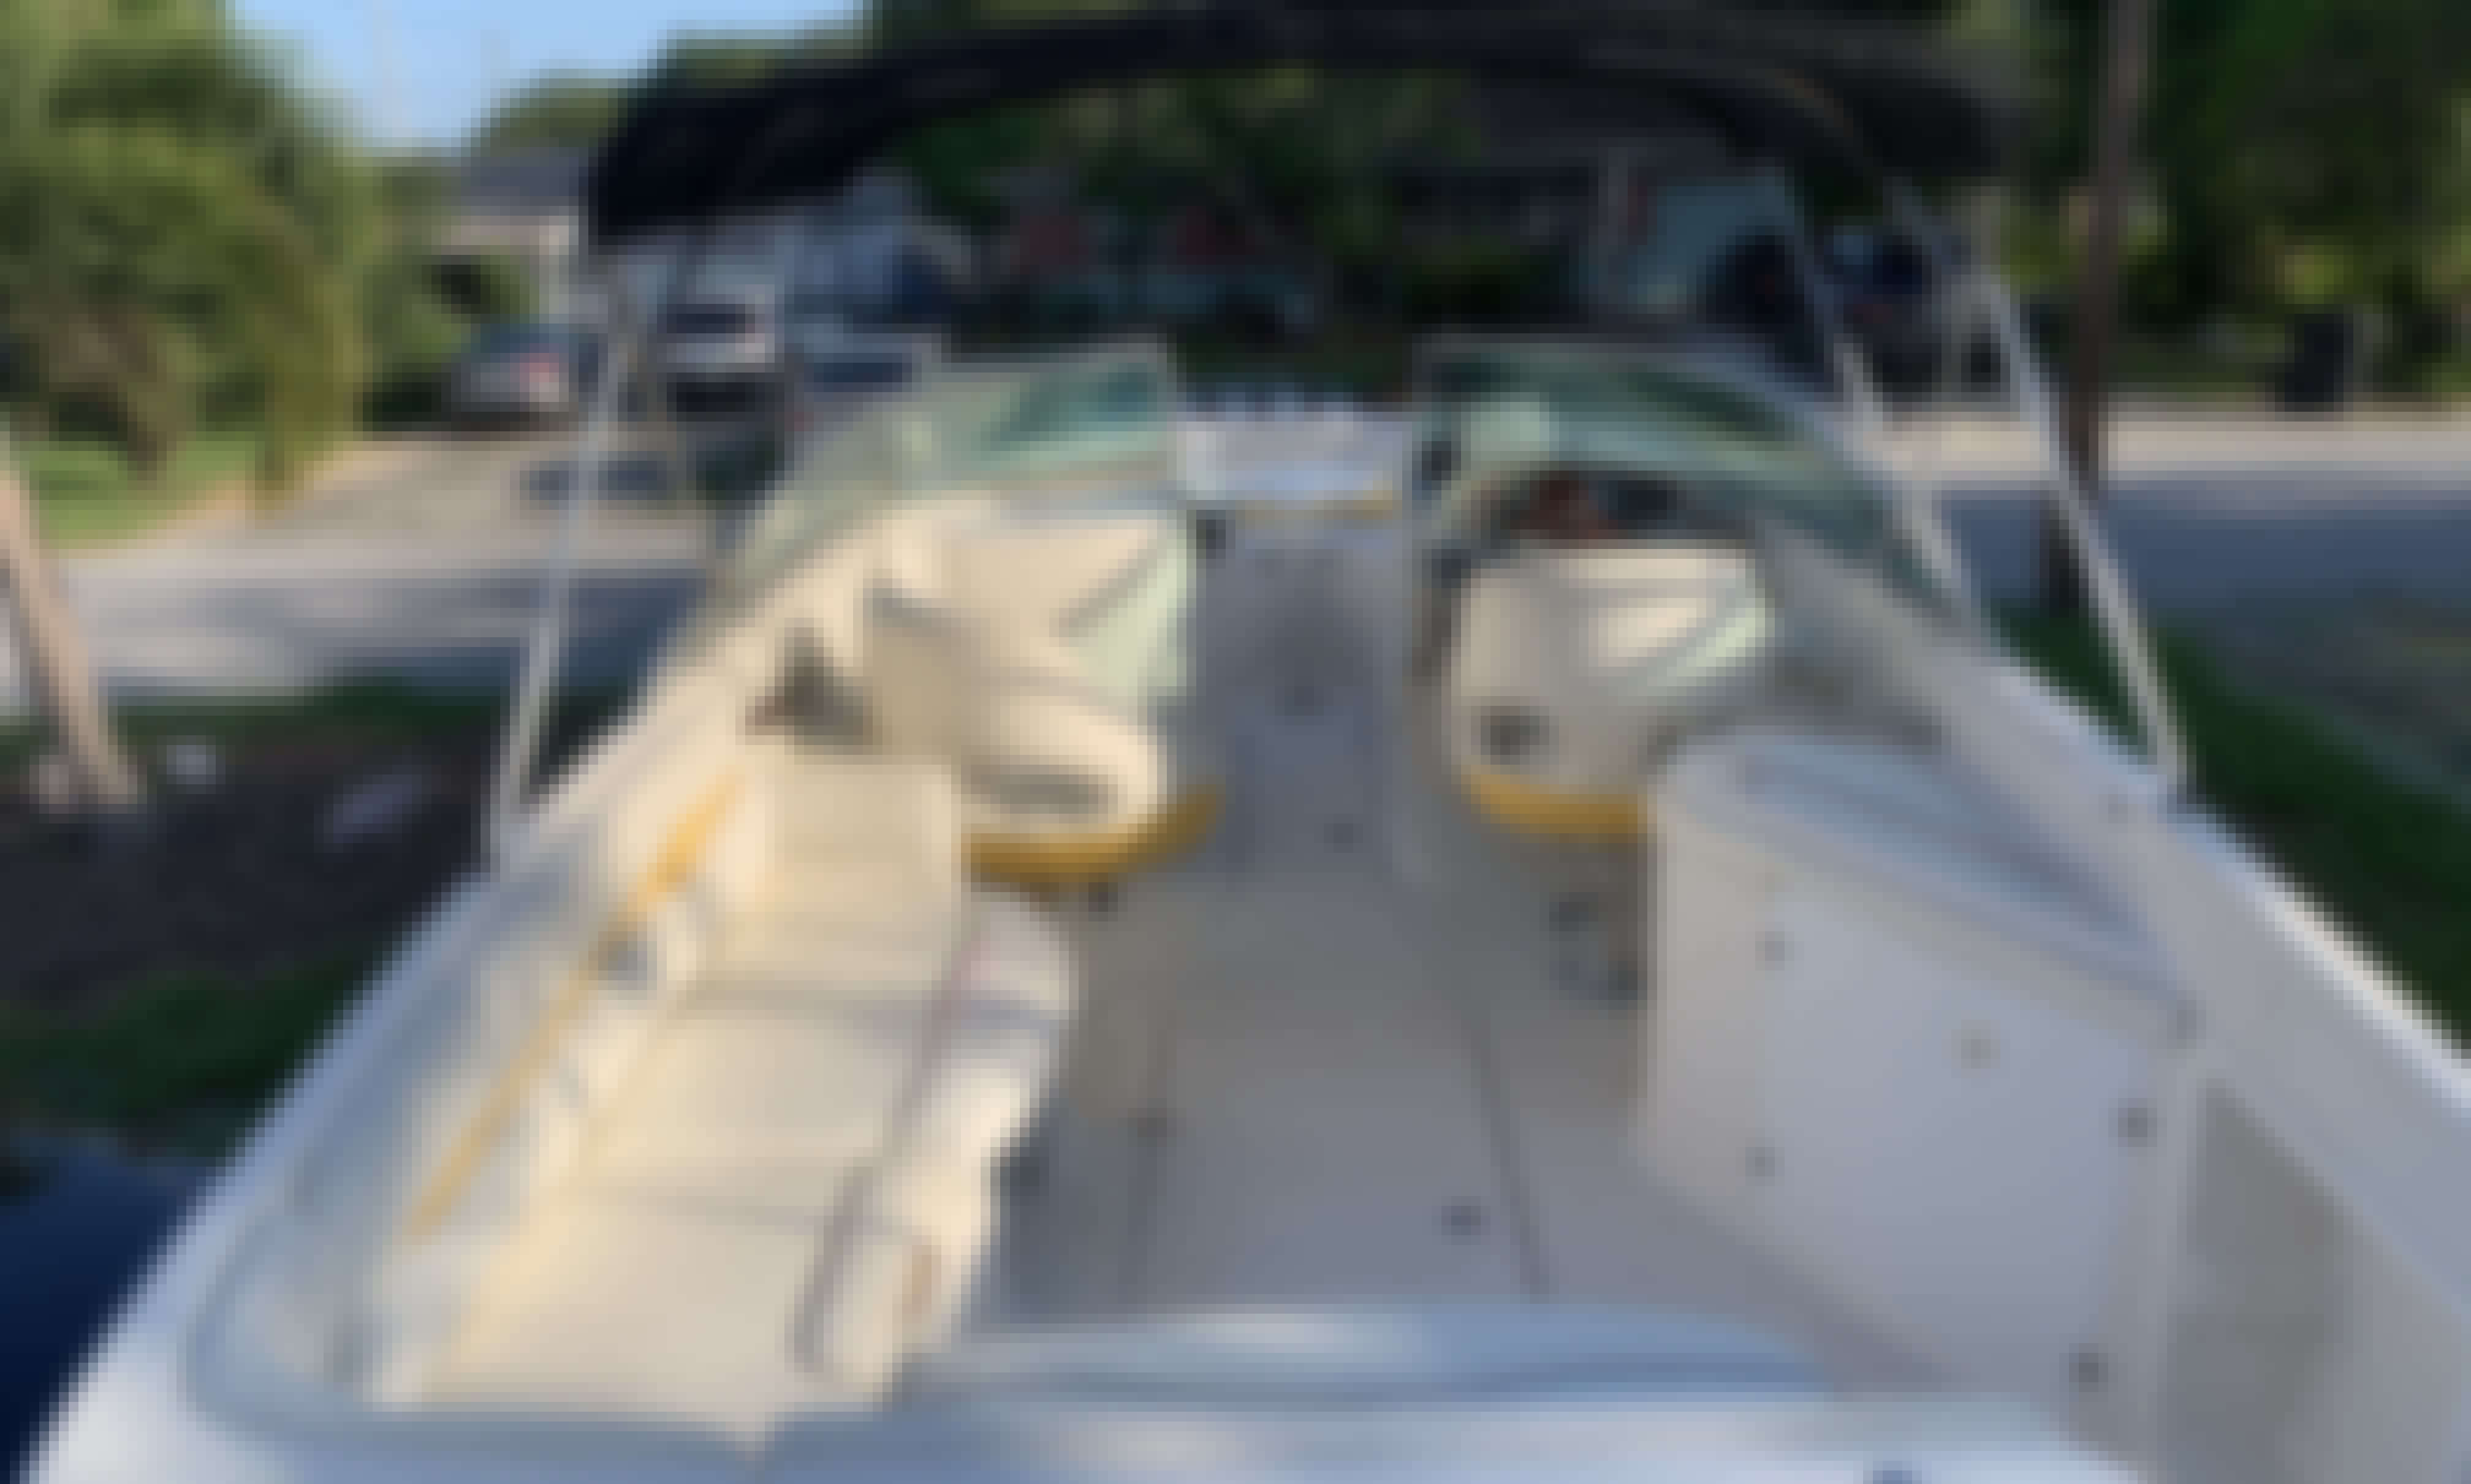 Rent a Party Boat with seating capacity for 8 people! 24' Monterey Montura 248LS Bowrider in St. Petersburg